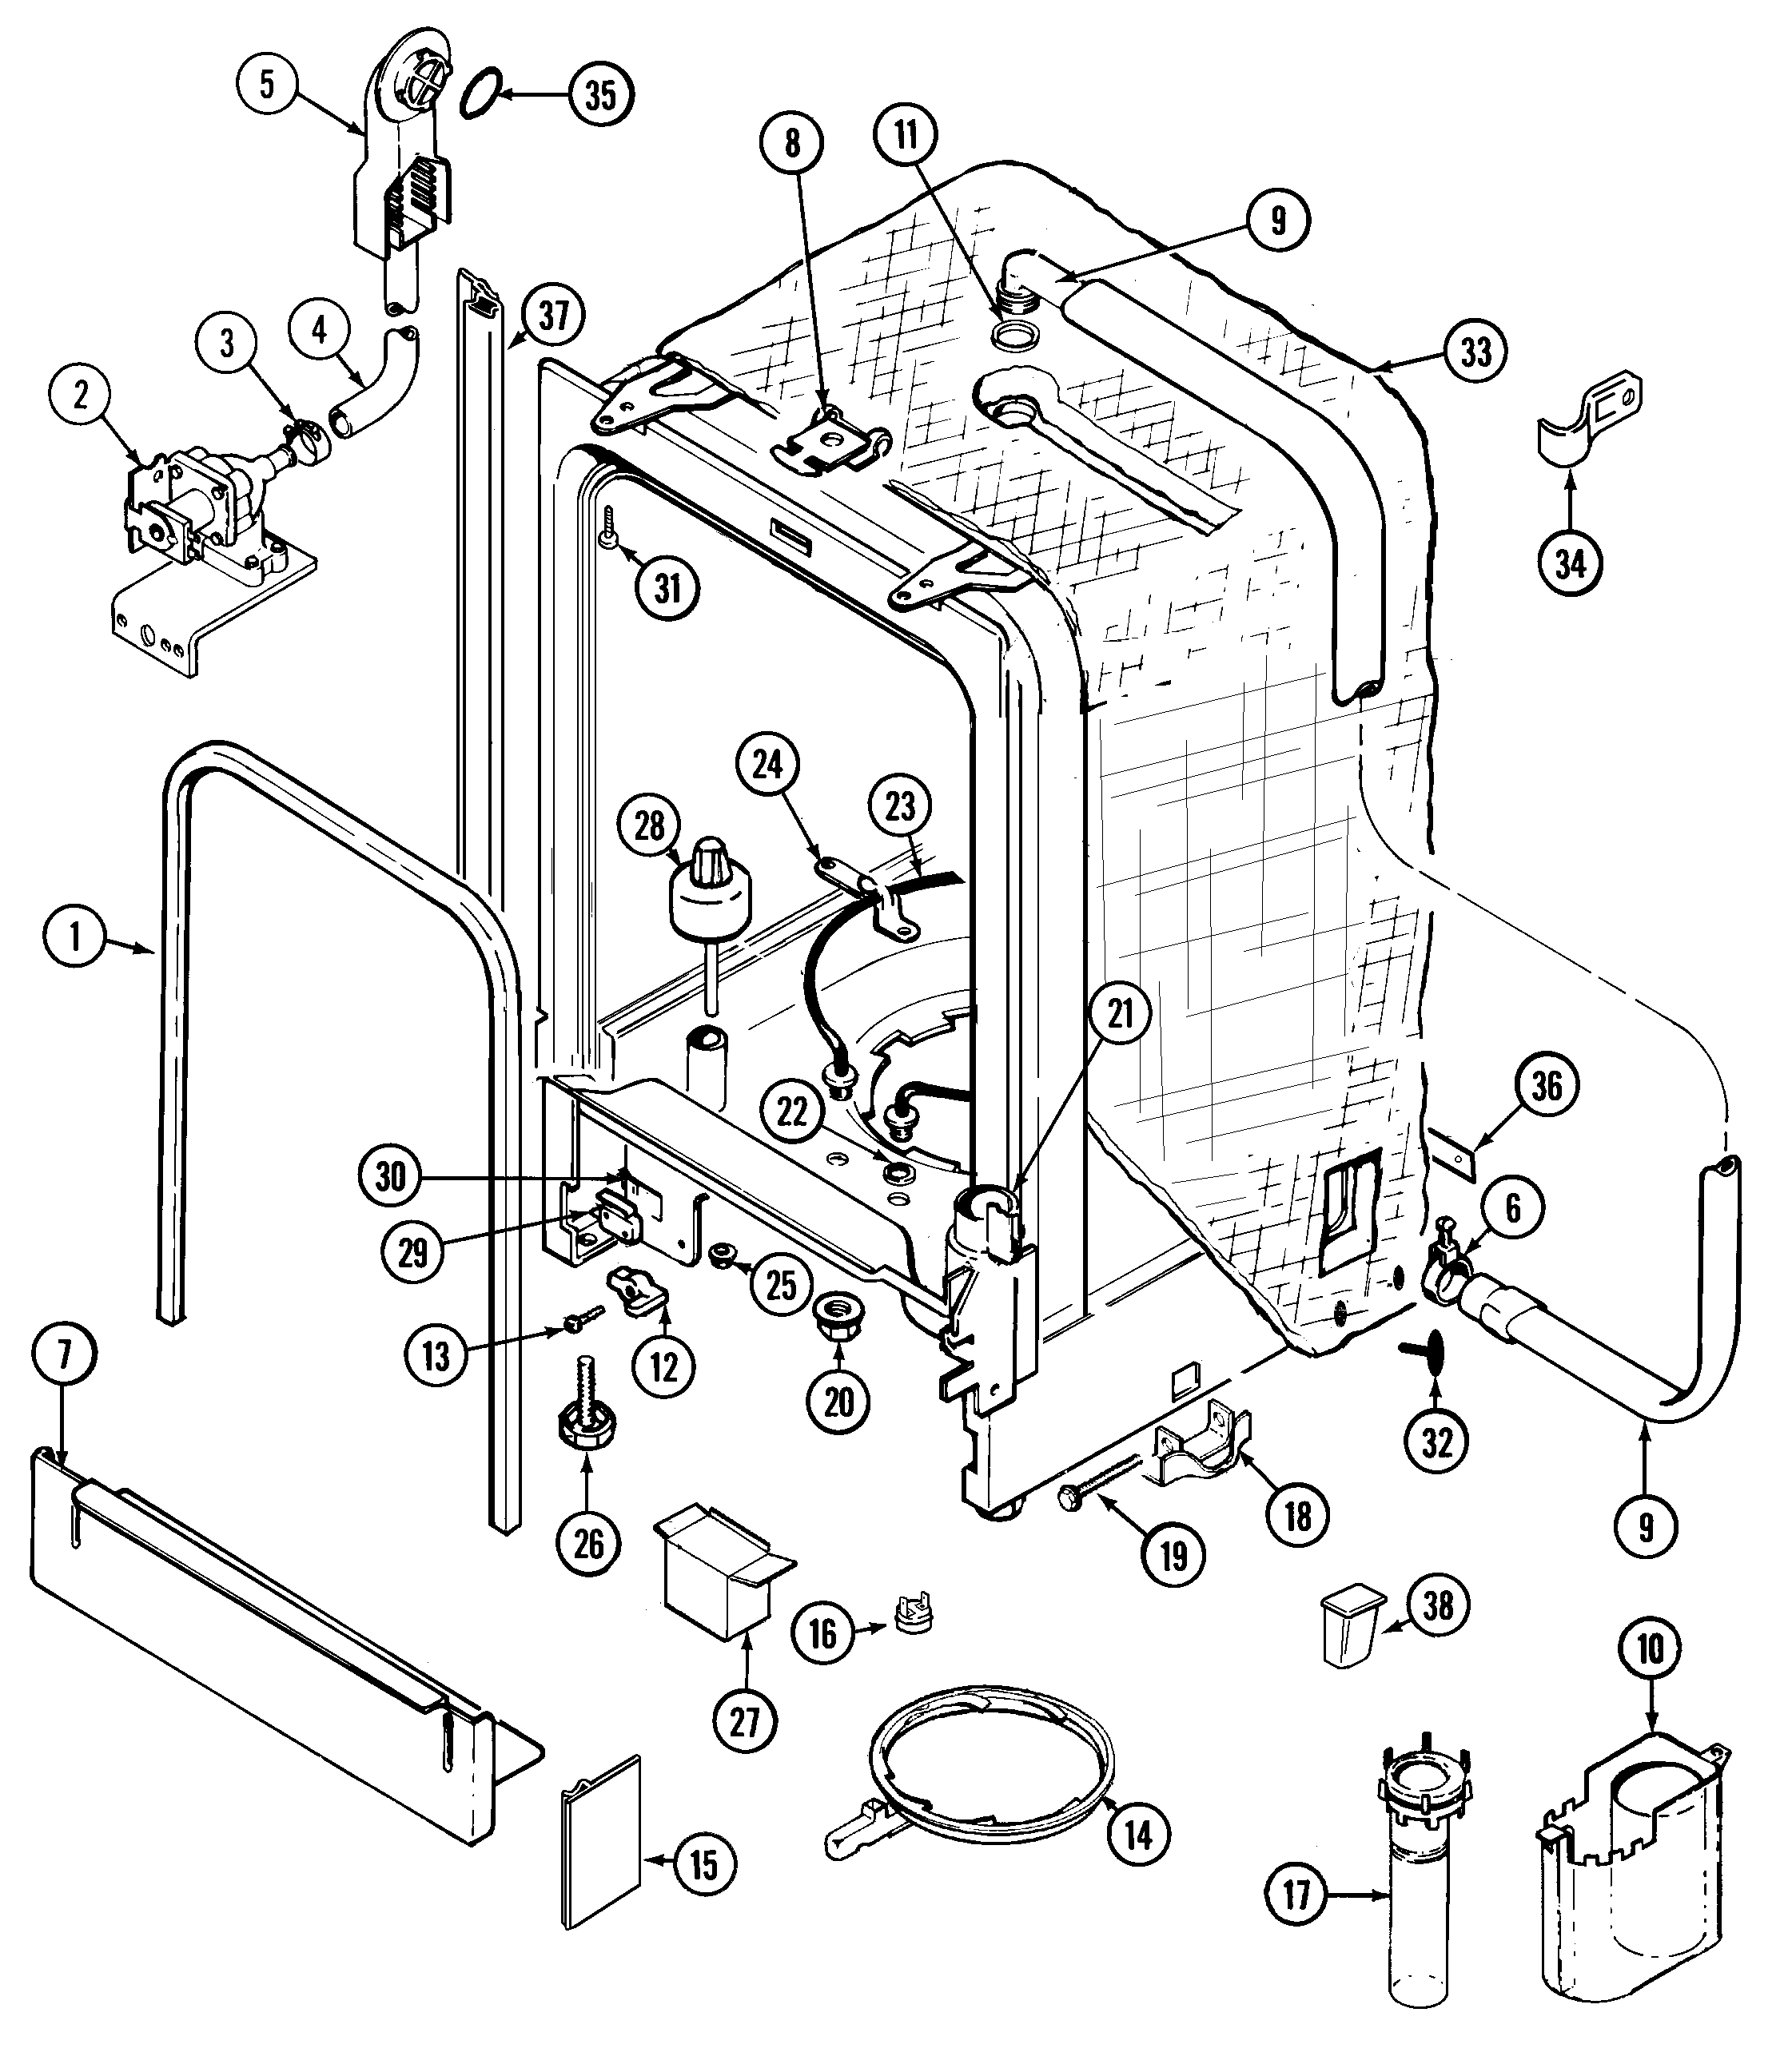 wiring diagrams for ikea appliances whirlpool